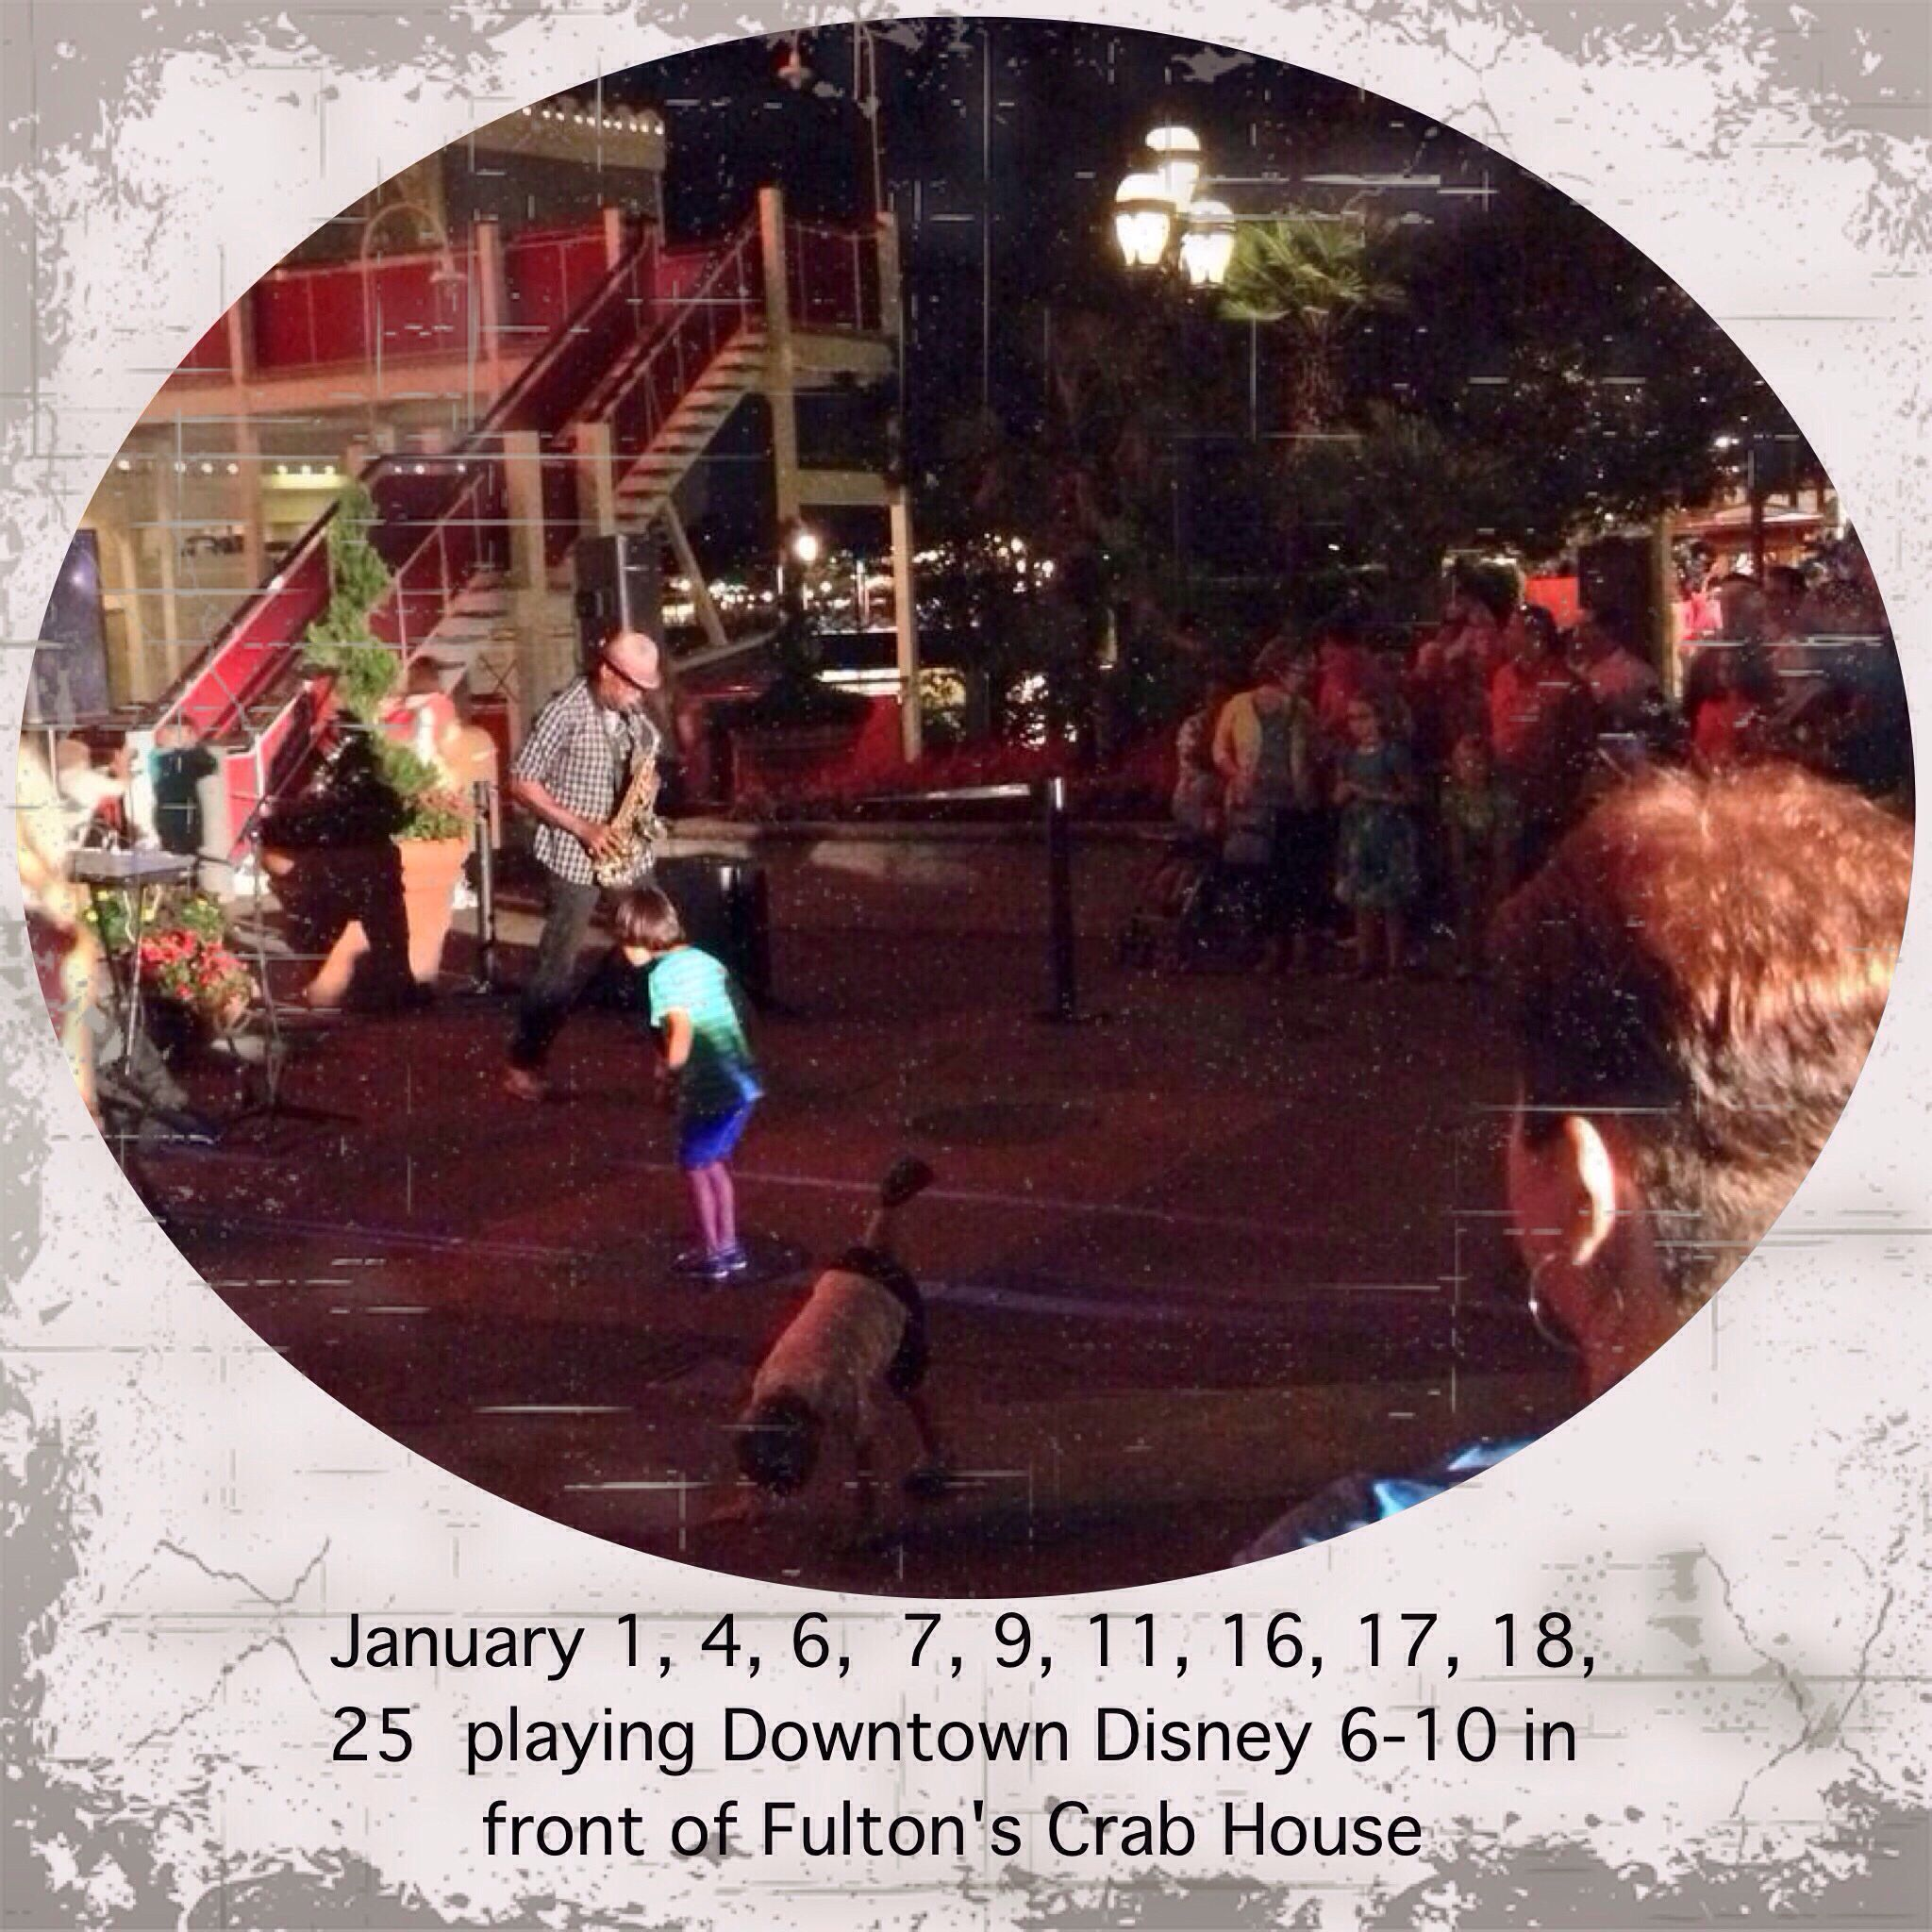 January 1, 4, 6,  7, 9, 11, 16, 17, 18, 25  playing Downtown Disney 6-10 in front of Fulton's Crab House